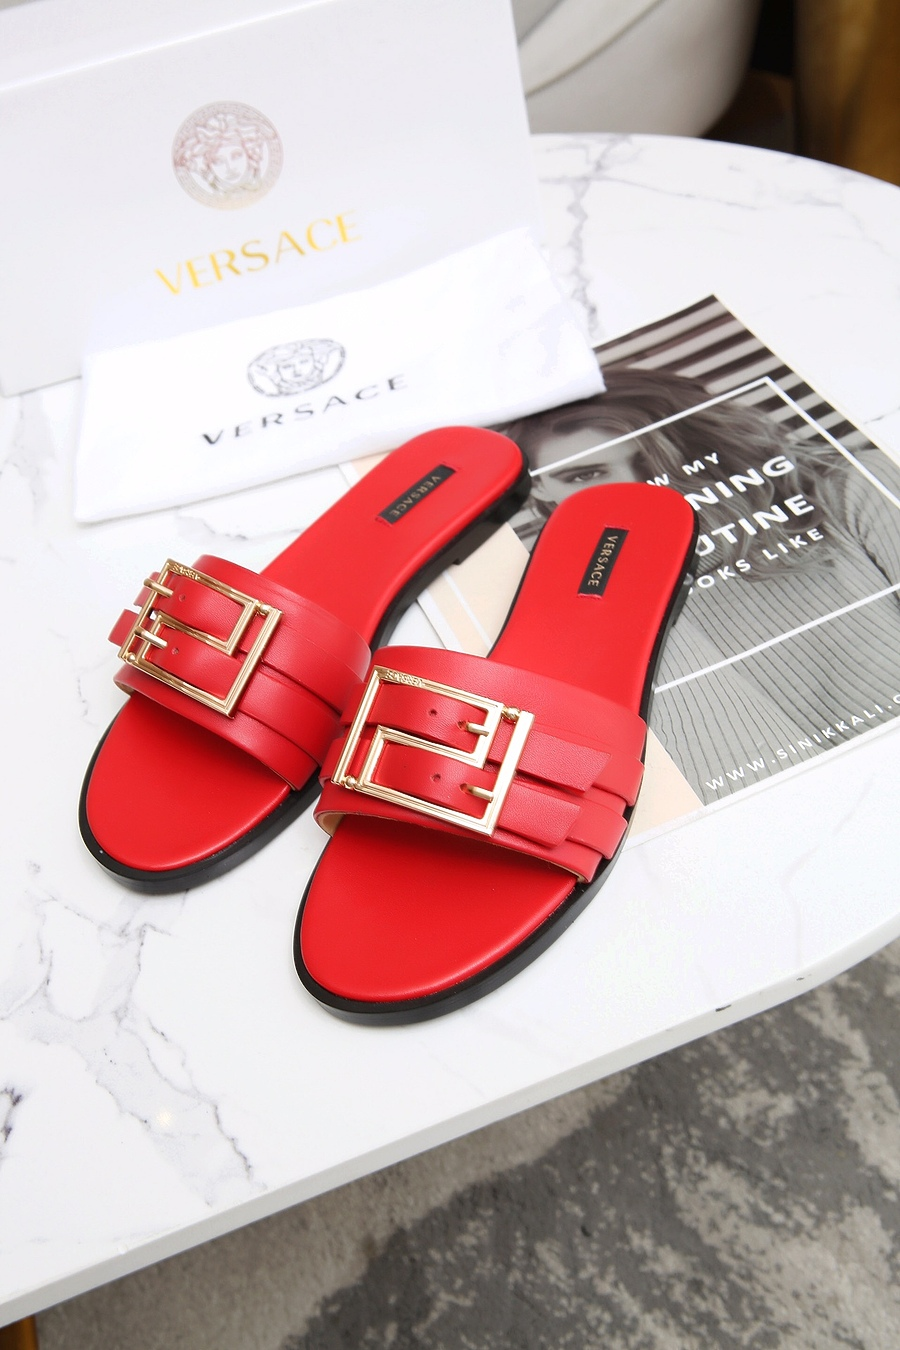 Versace shoes for versace Slippers for Women #443891 replica